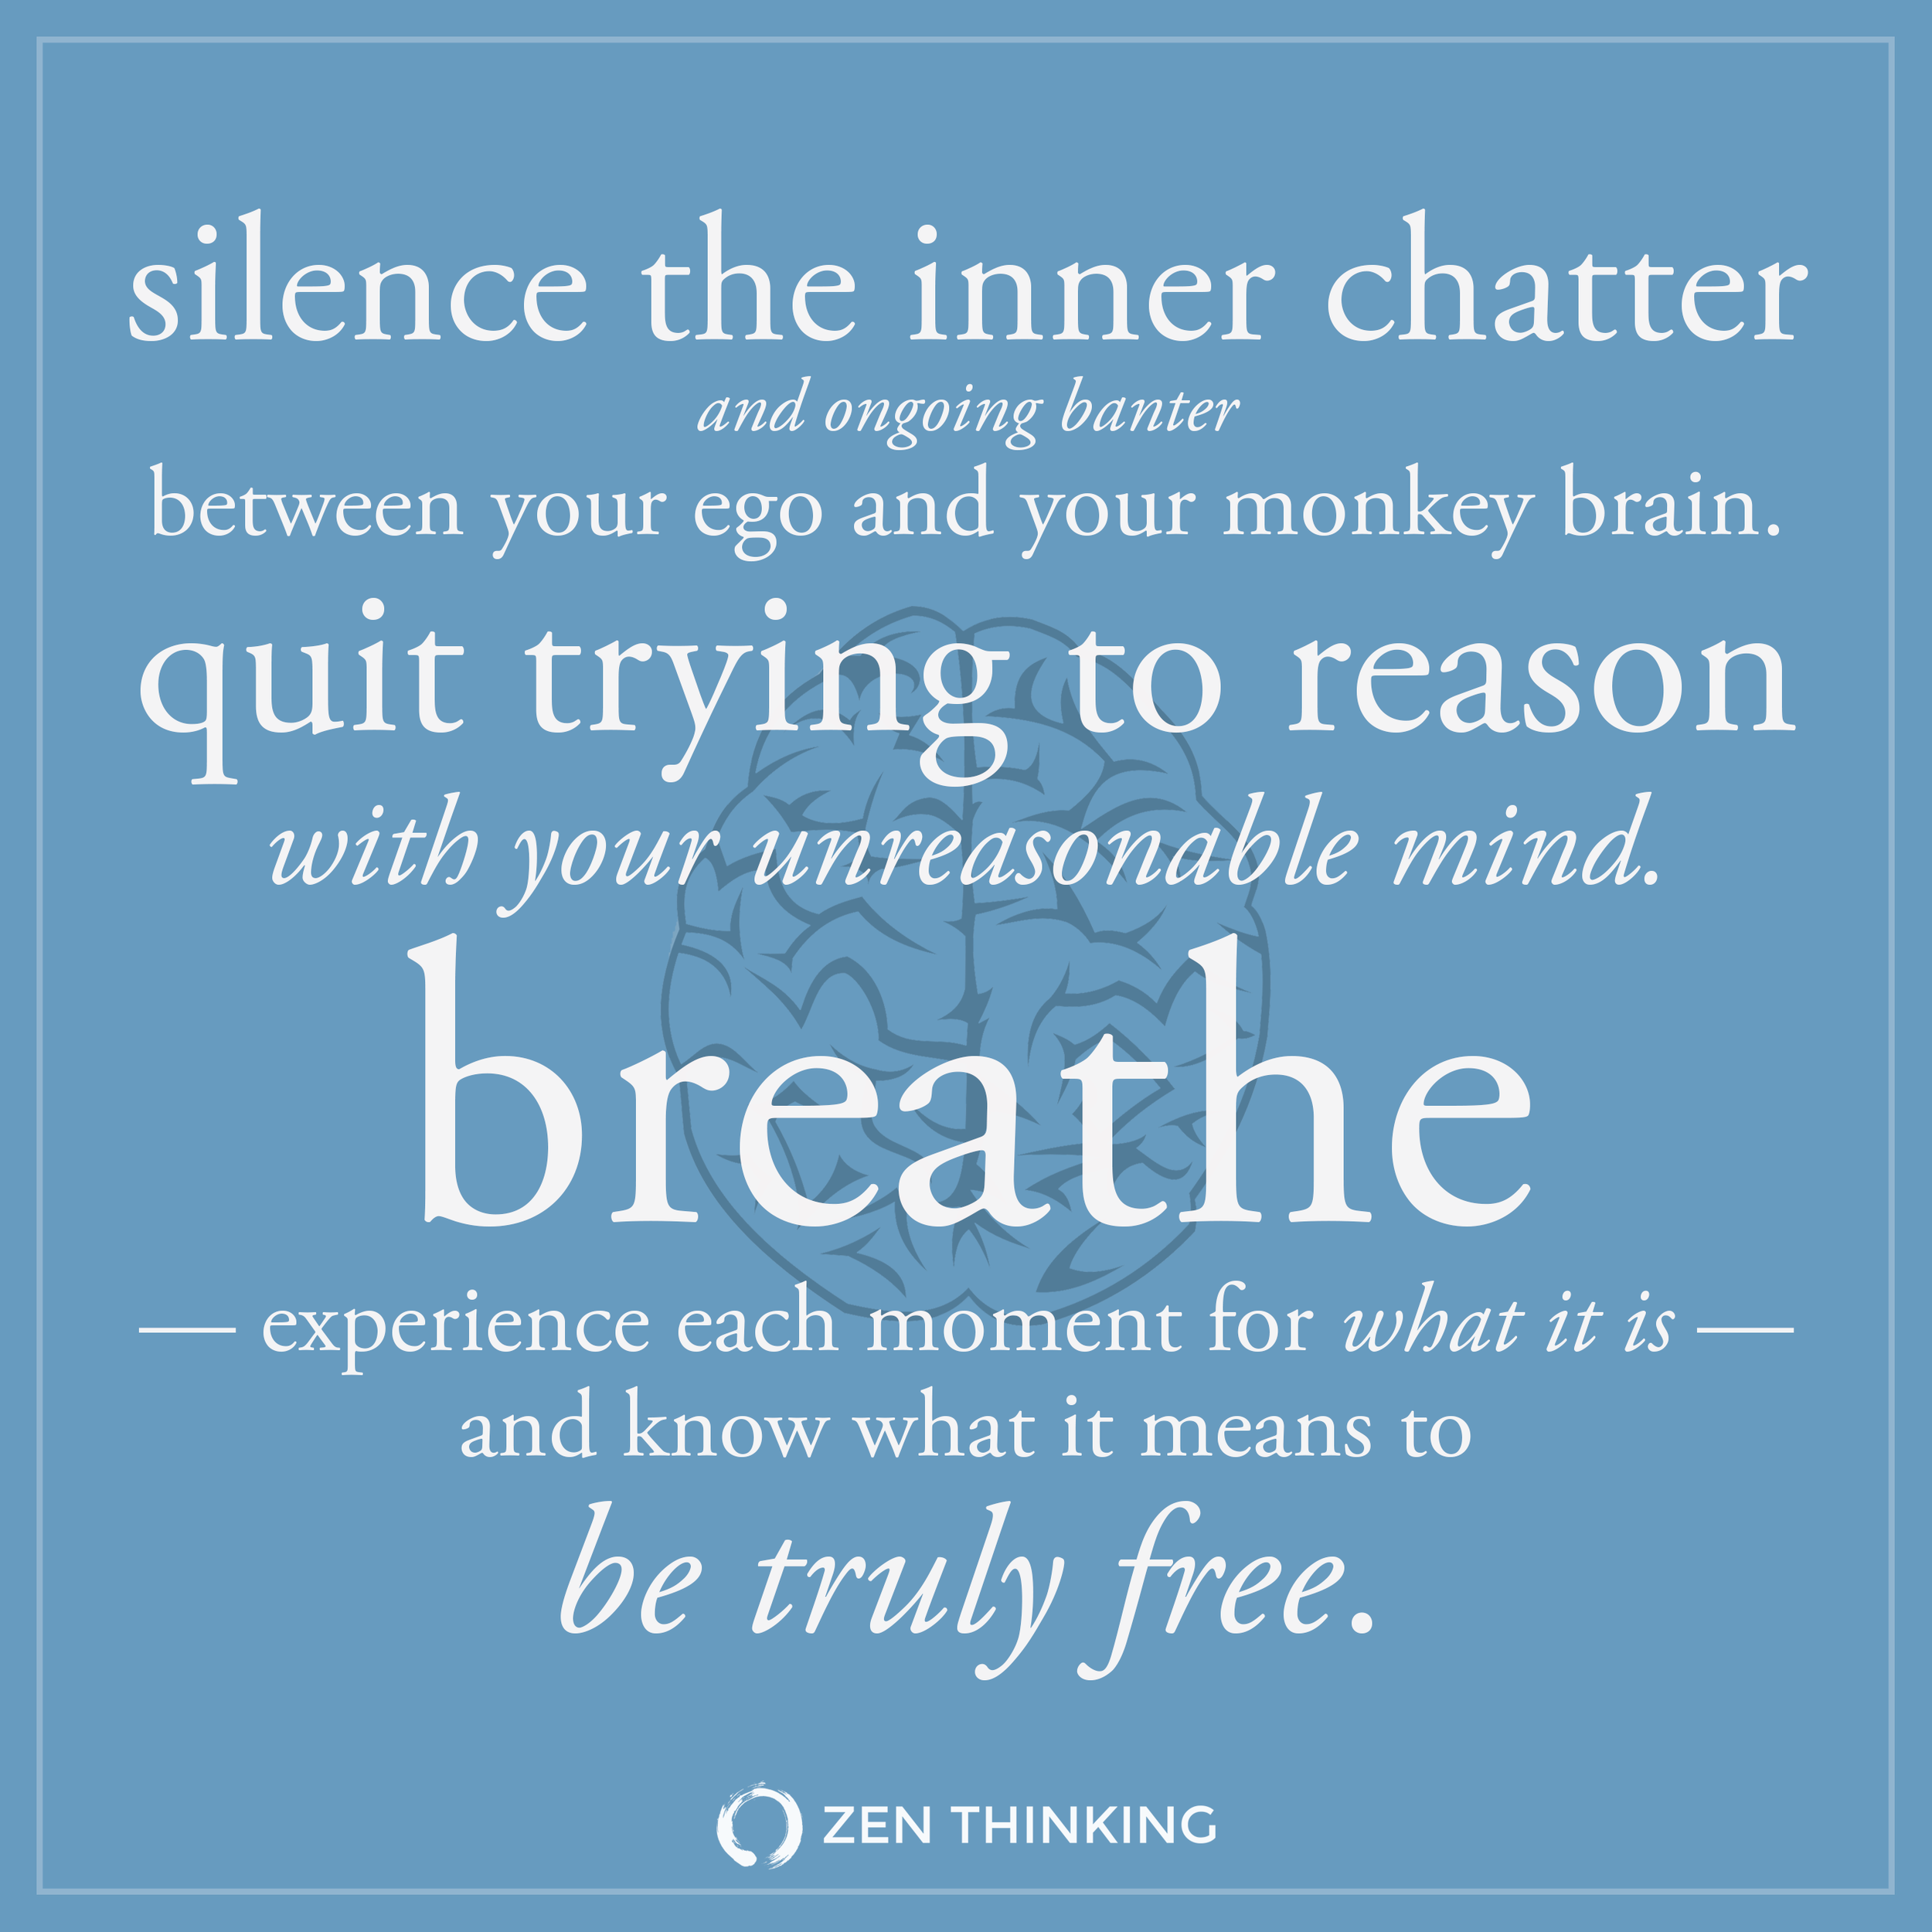 silence the inner chatter and ongoing banter between your ego and your monkey brain - Zen Thinking - Brian Thompson